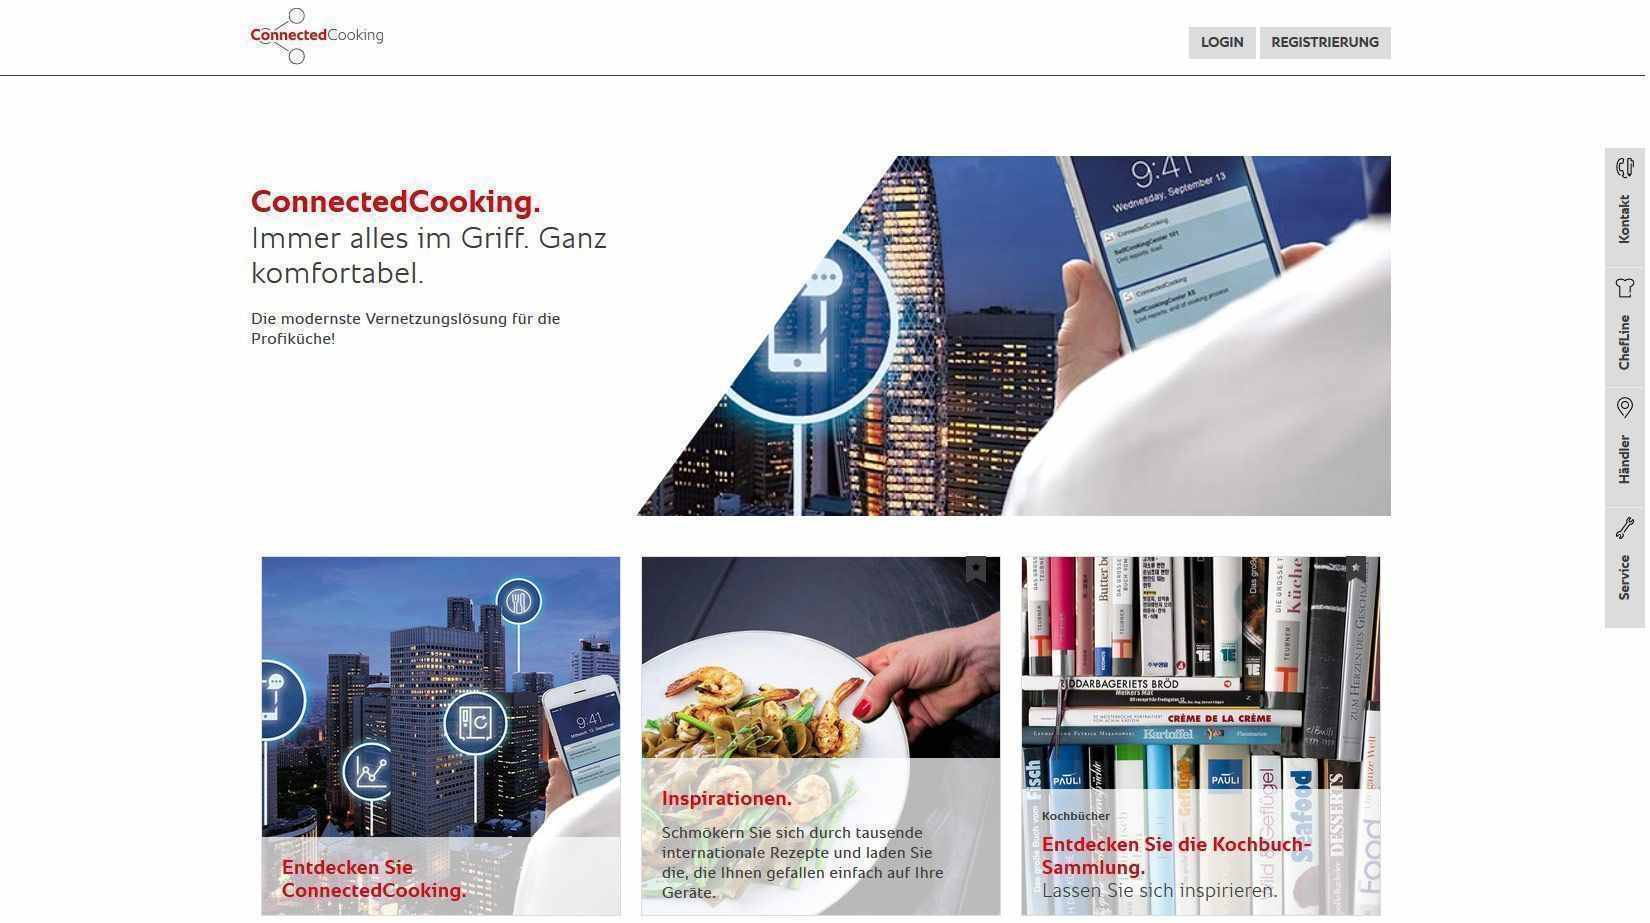 Rational ConnectedCooking LogIn